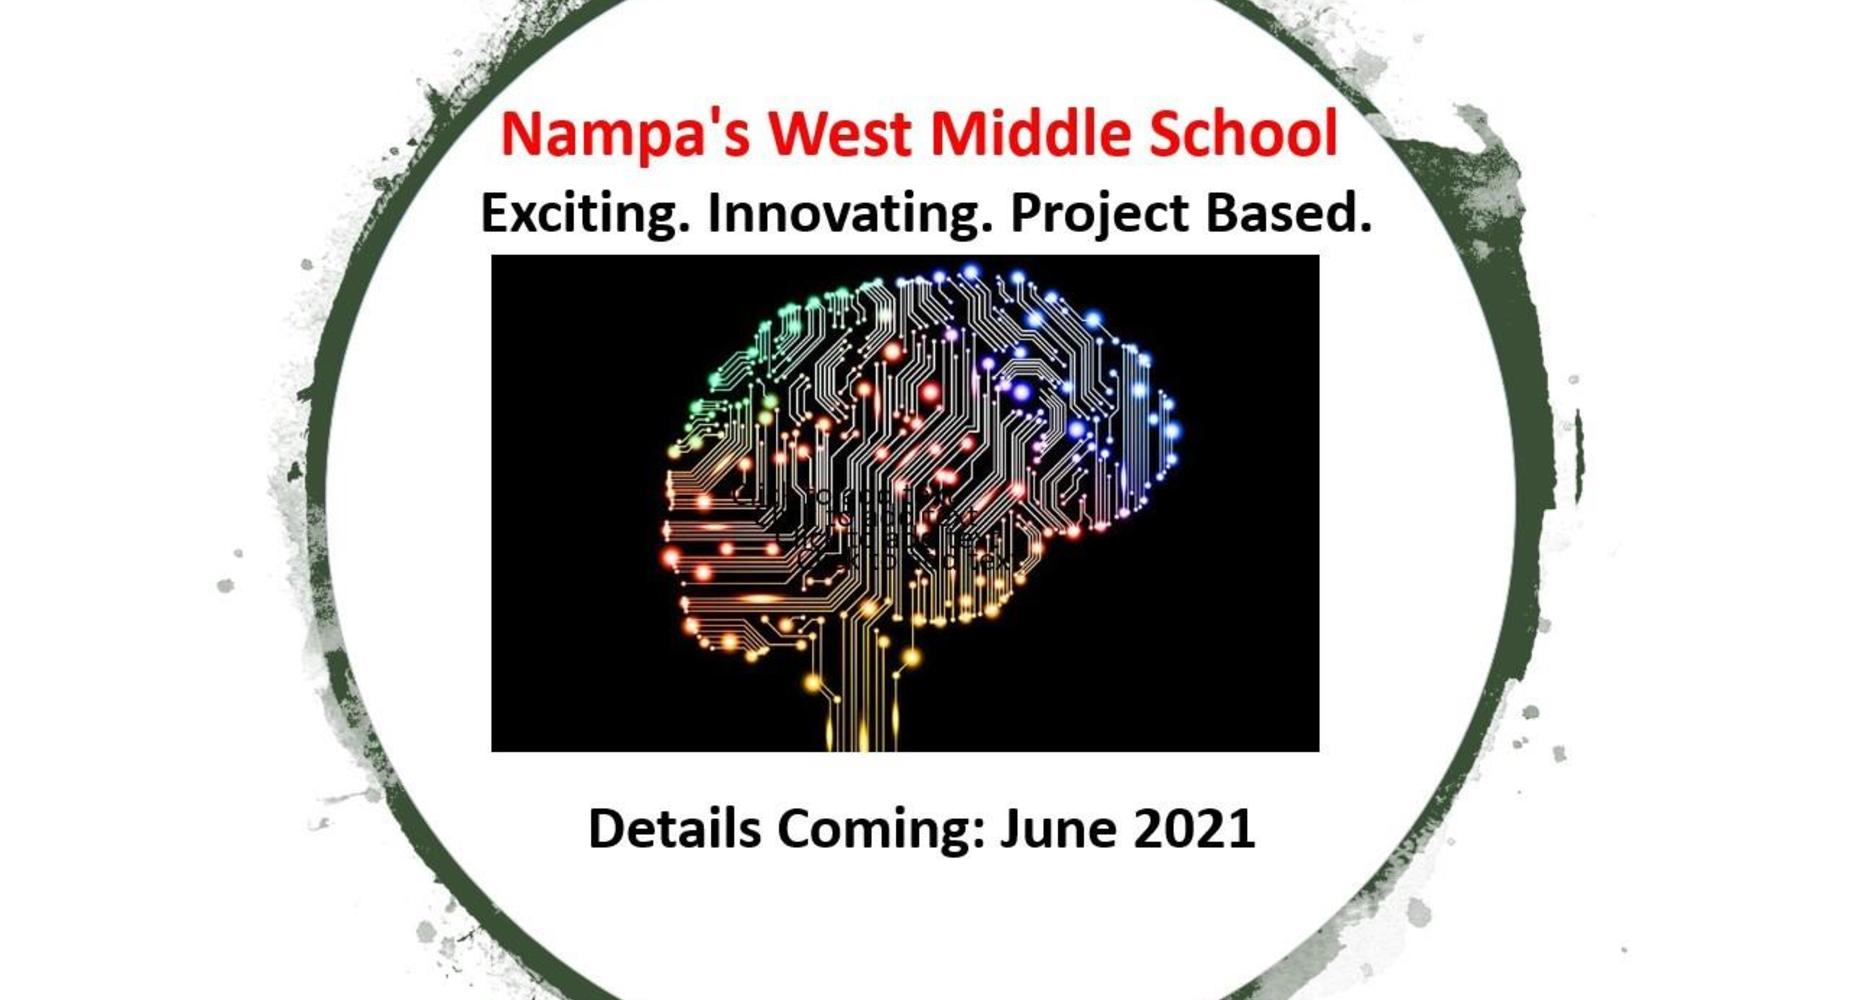 PBL announcement